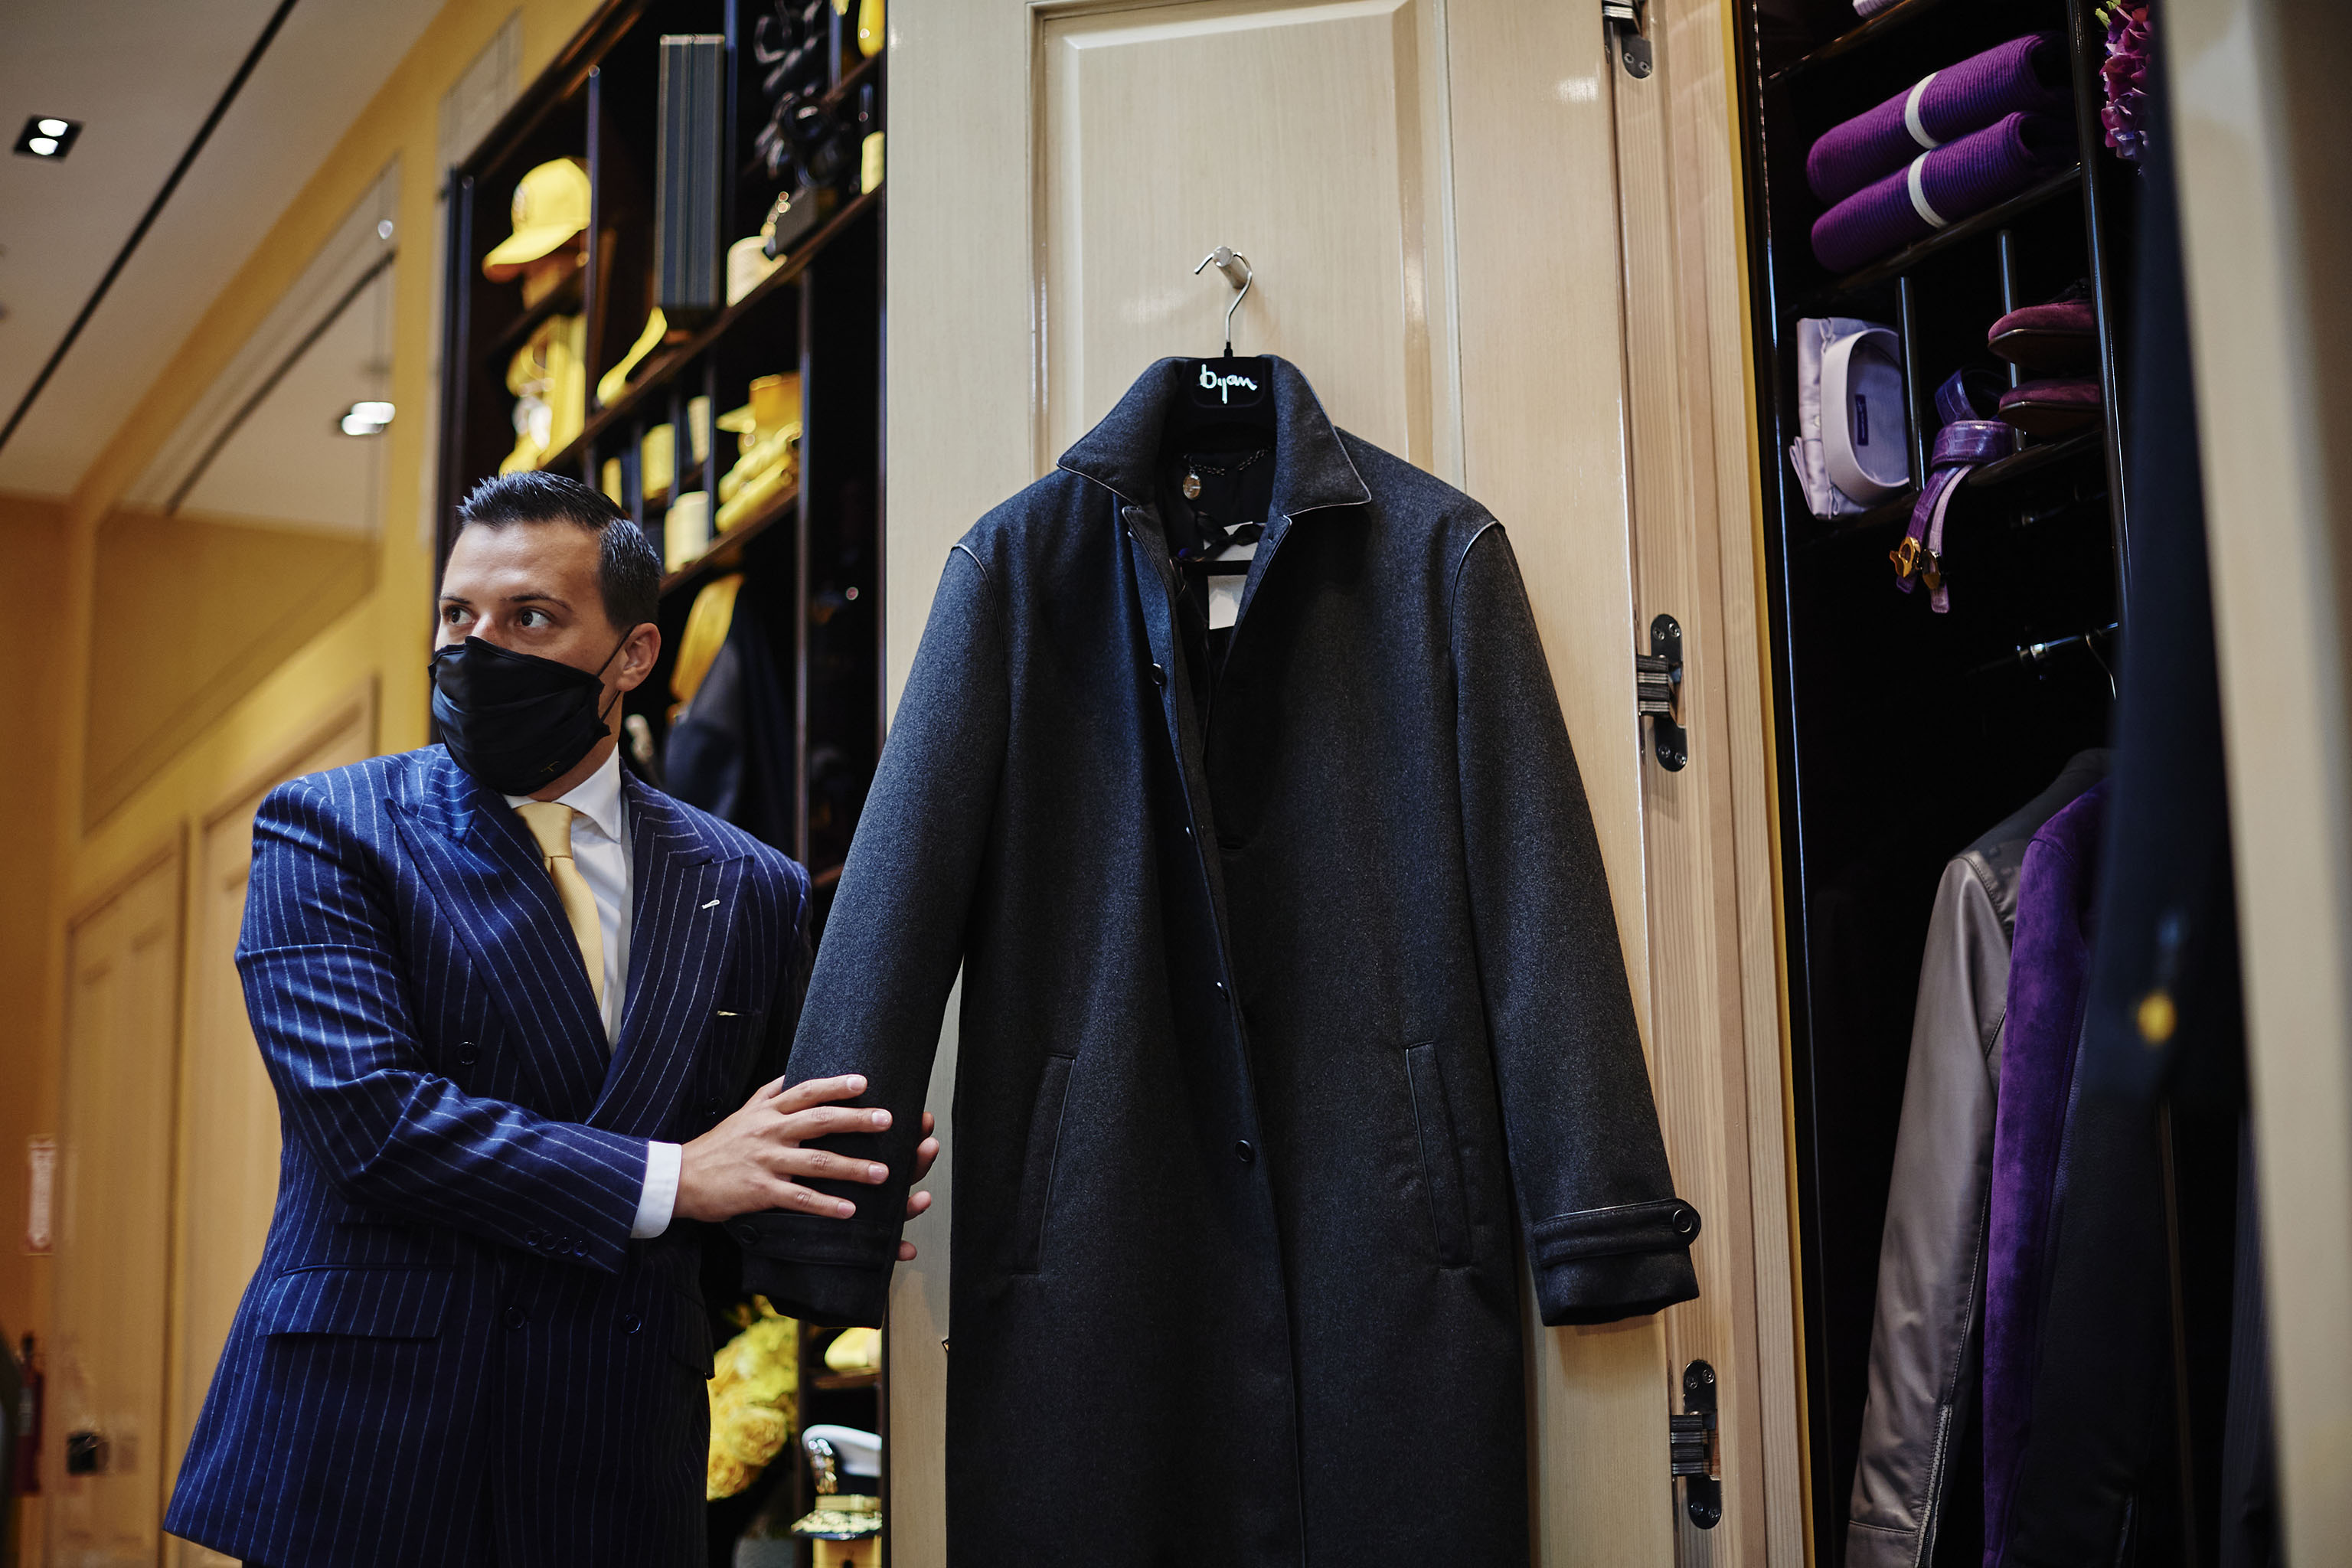 Nicolas Bijan at the House of Bijan store on Rodeo Drive.